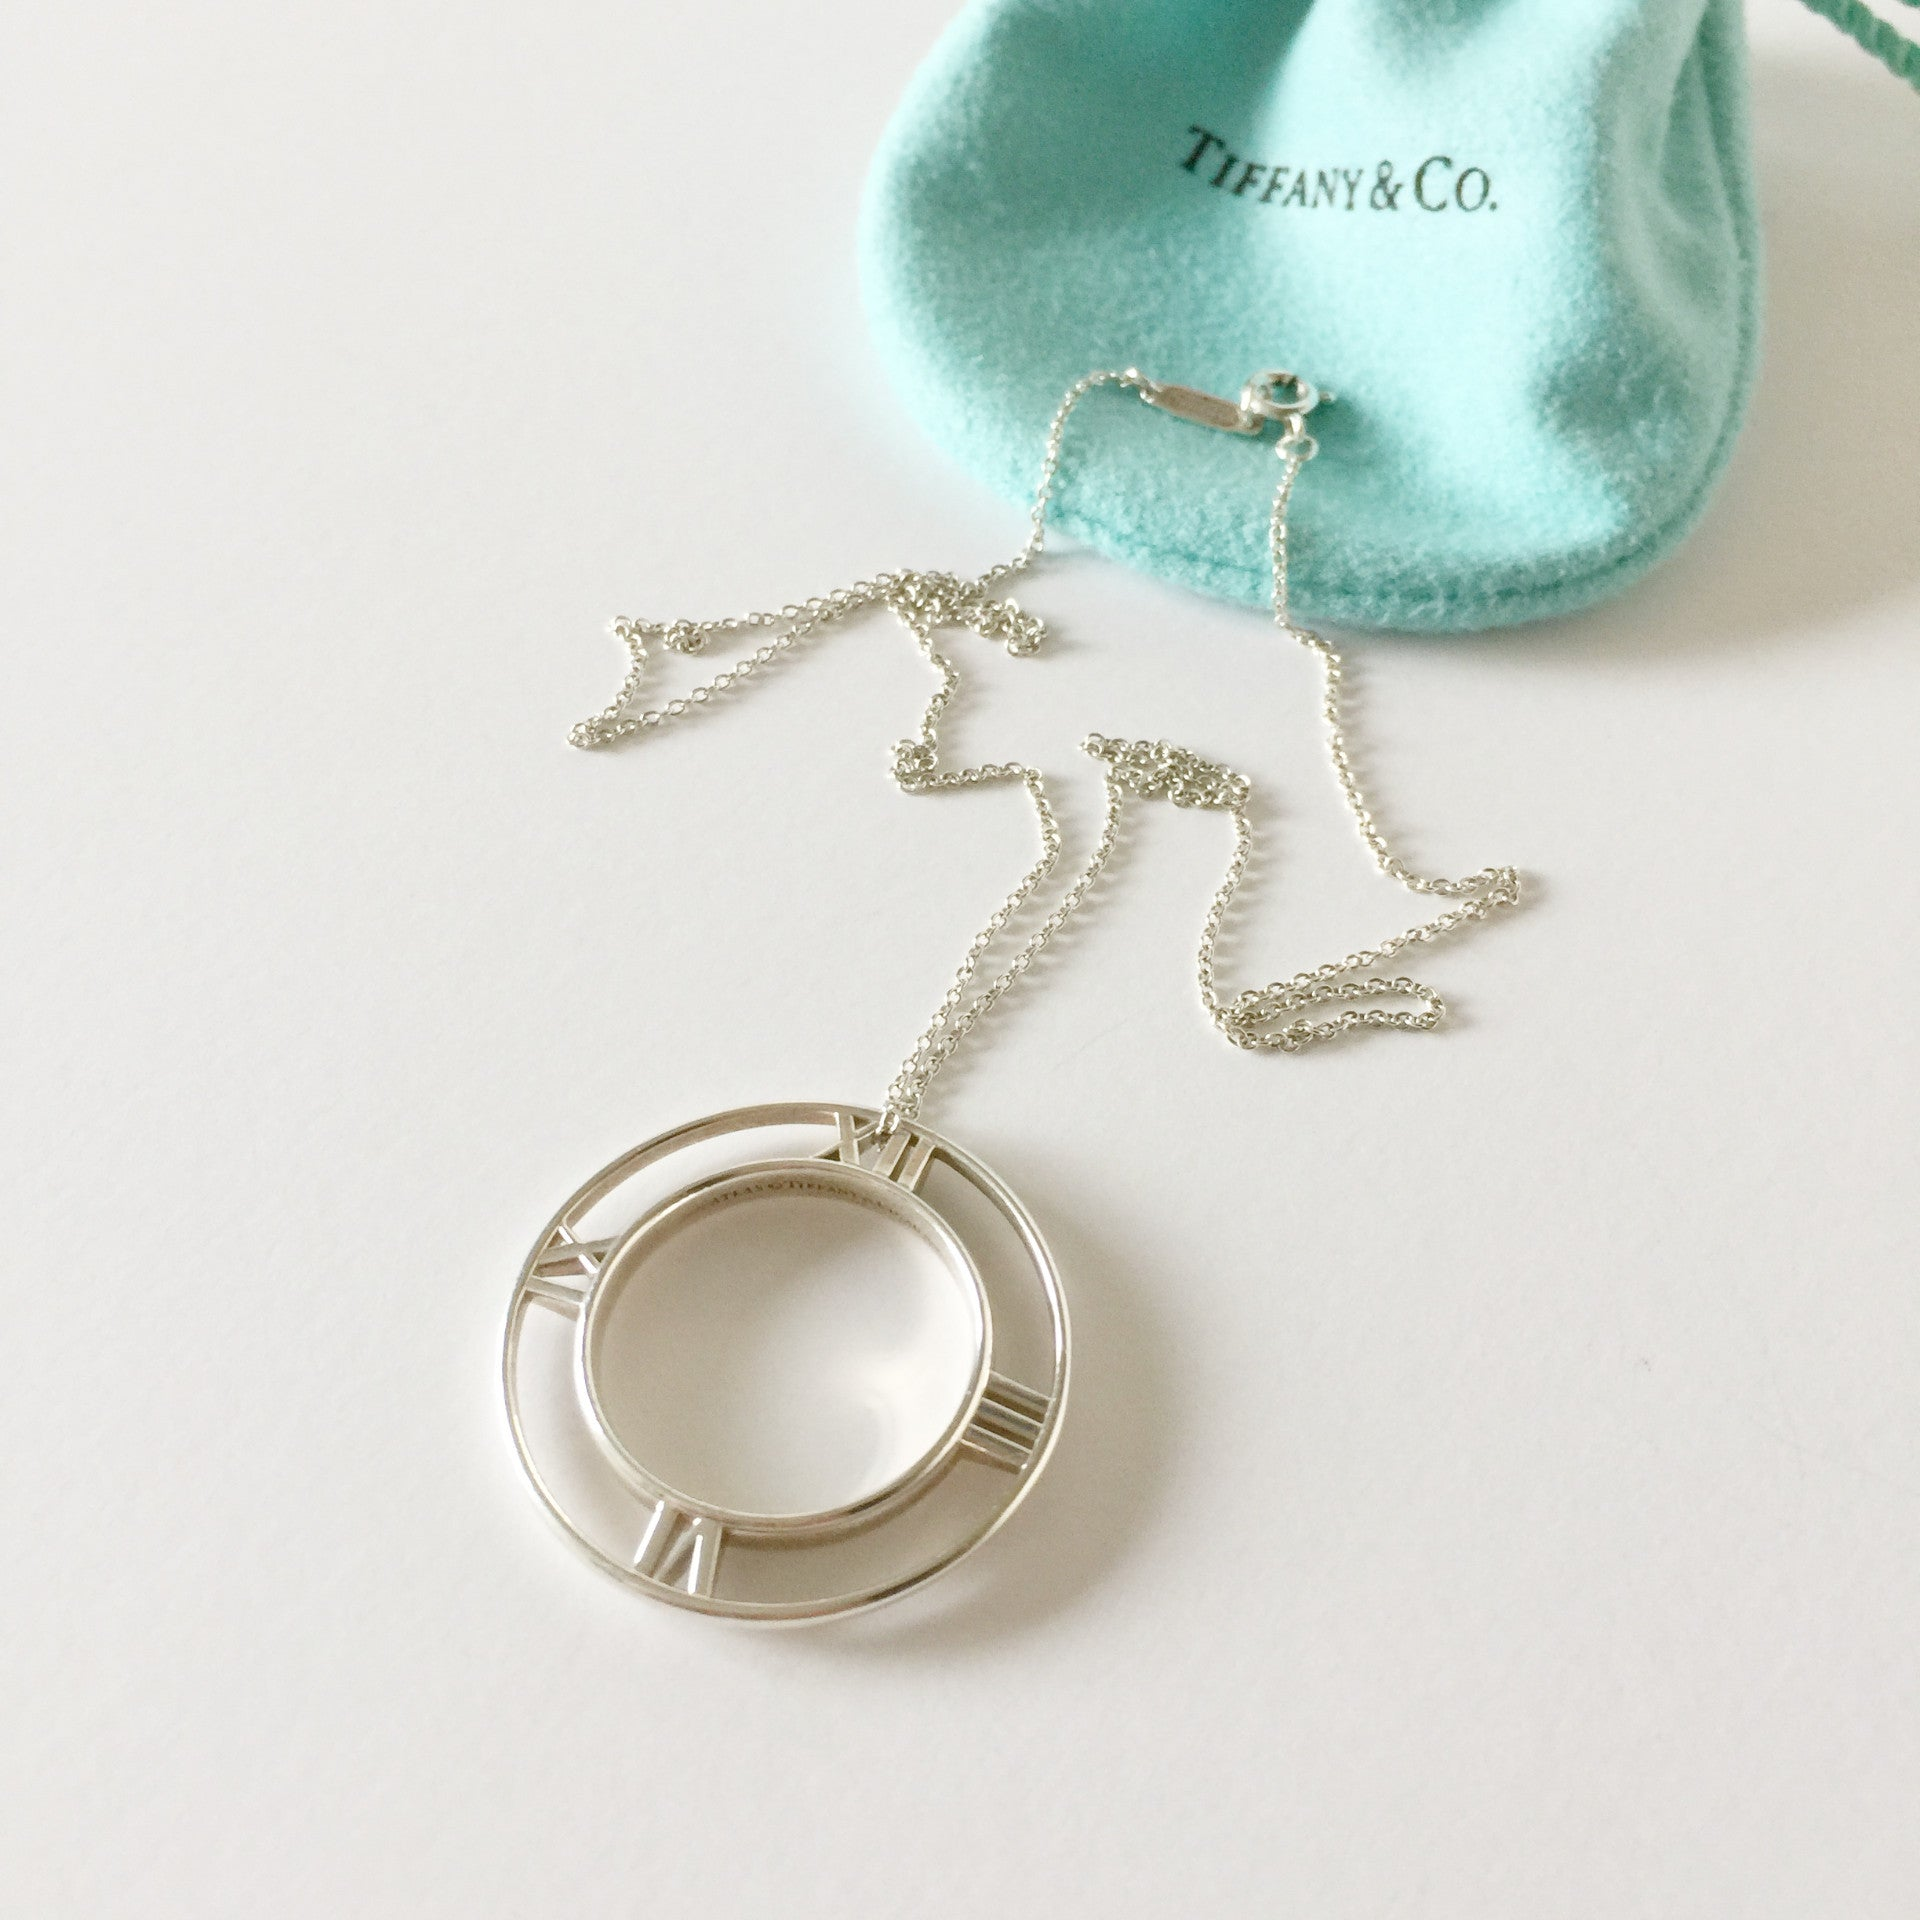 Authentic Tiffany & Co Atlas Necklace